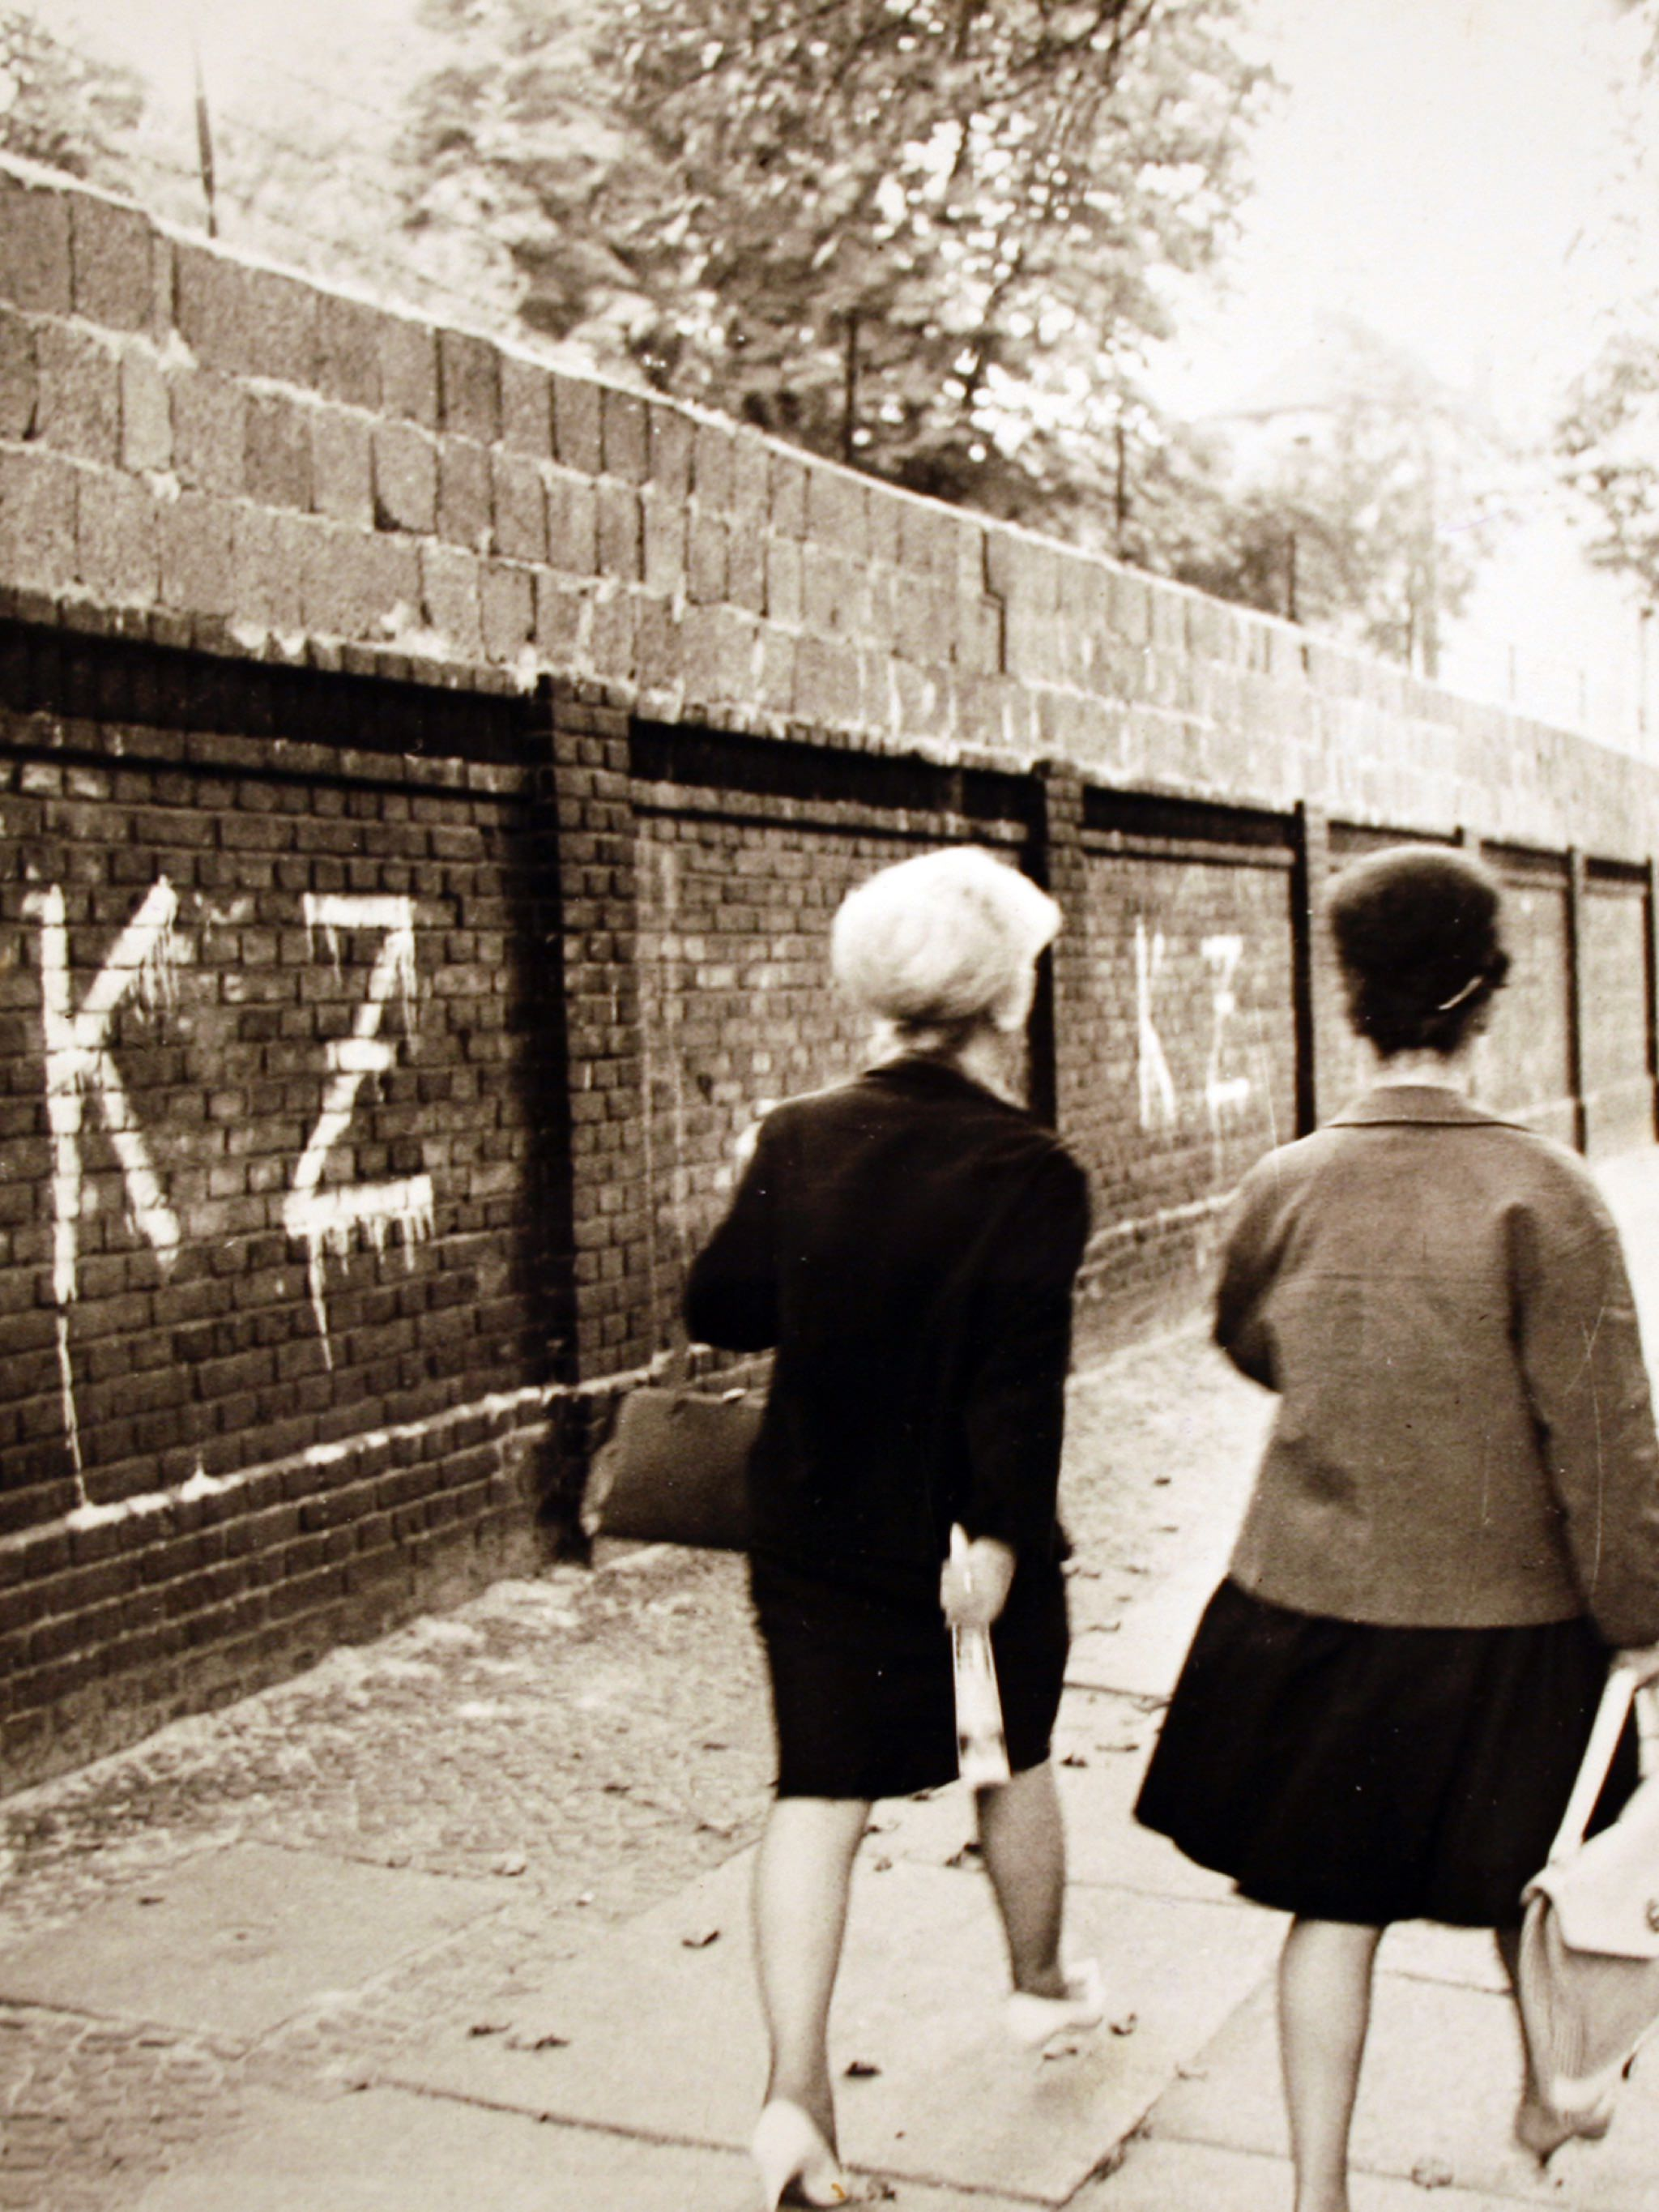 Photograph of graffiti on the Western side of the Berlin Wall that suggests the other side is a concentration camp